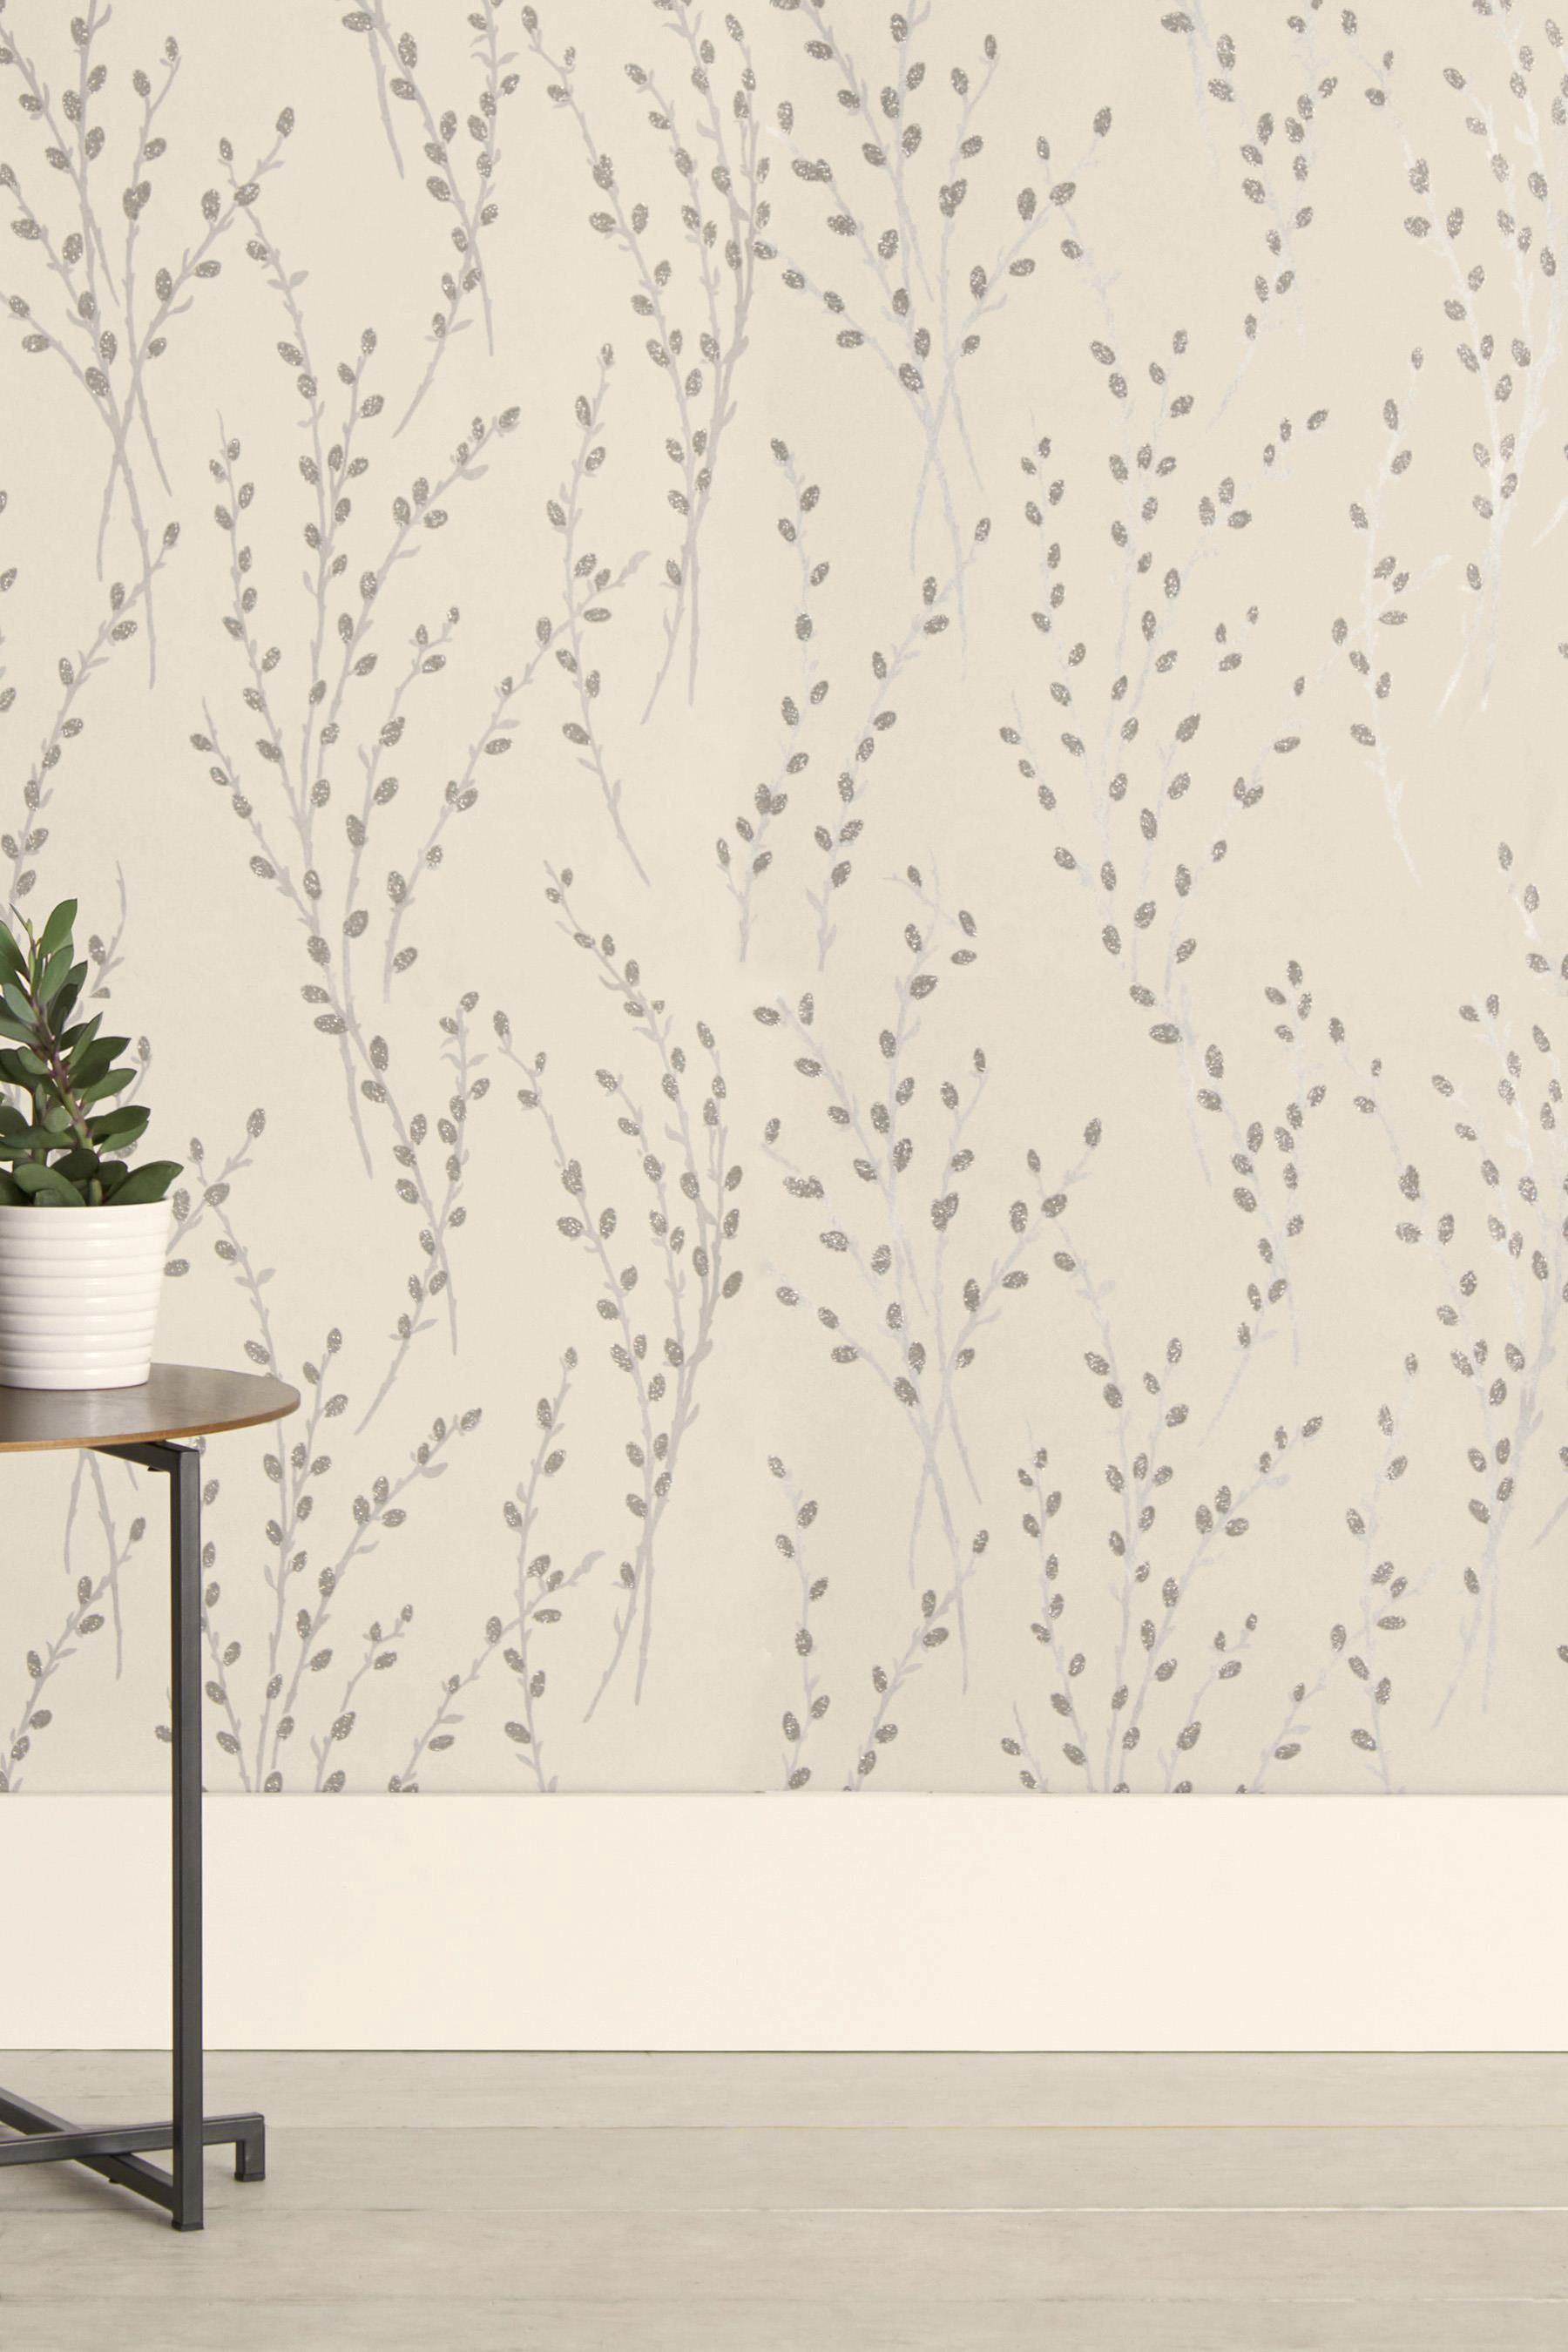 Buy Paste The Wall Glitter Willow Wallpaper from the Next UK online